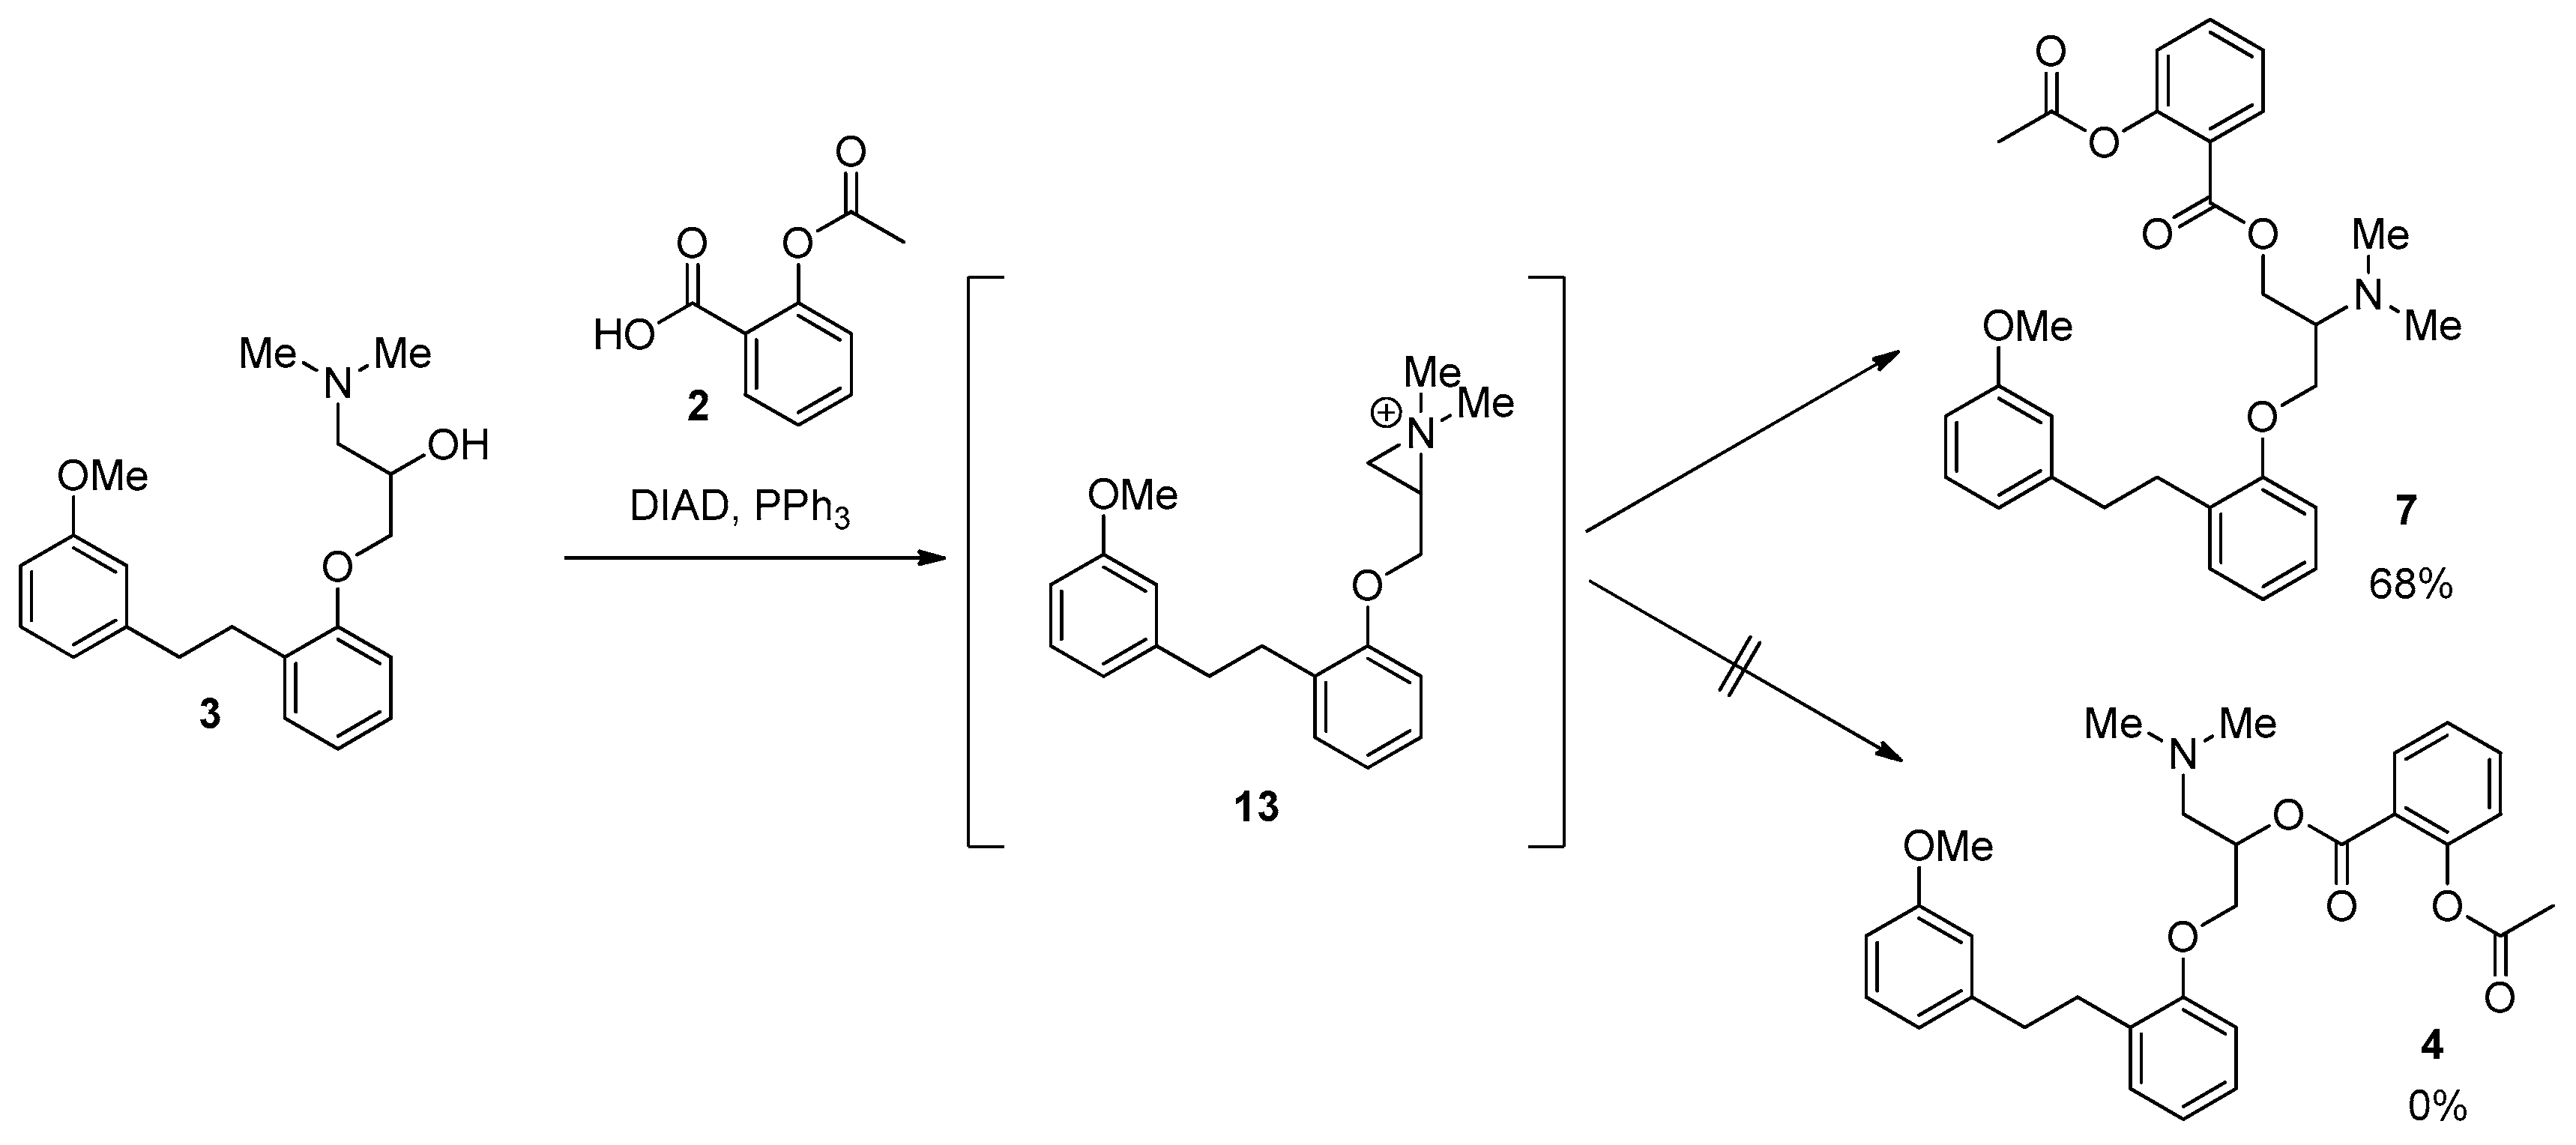 Chemical Equation Synthesis Of Aspirin From Acetyl Chloride